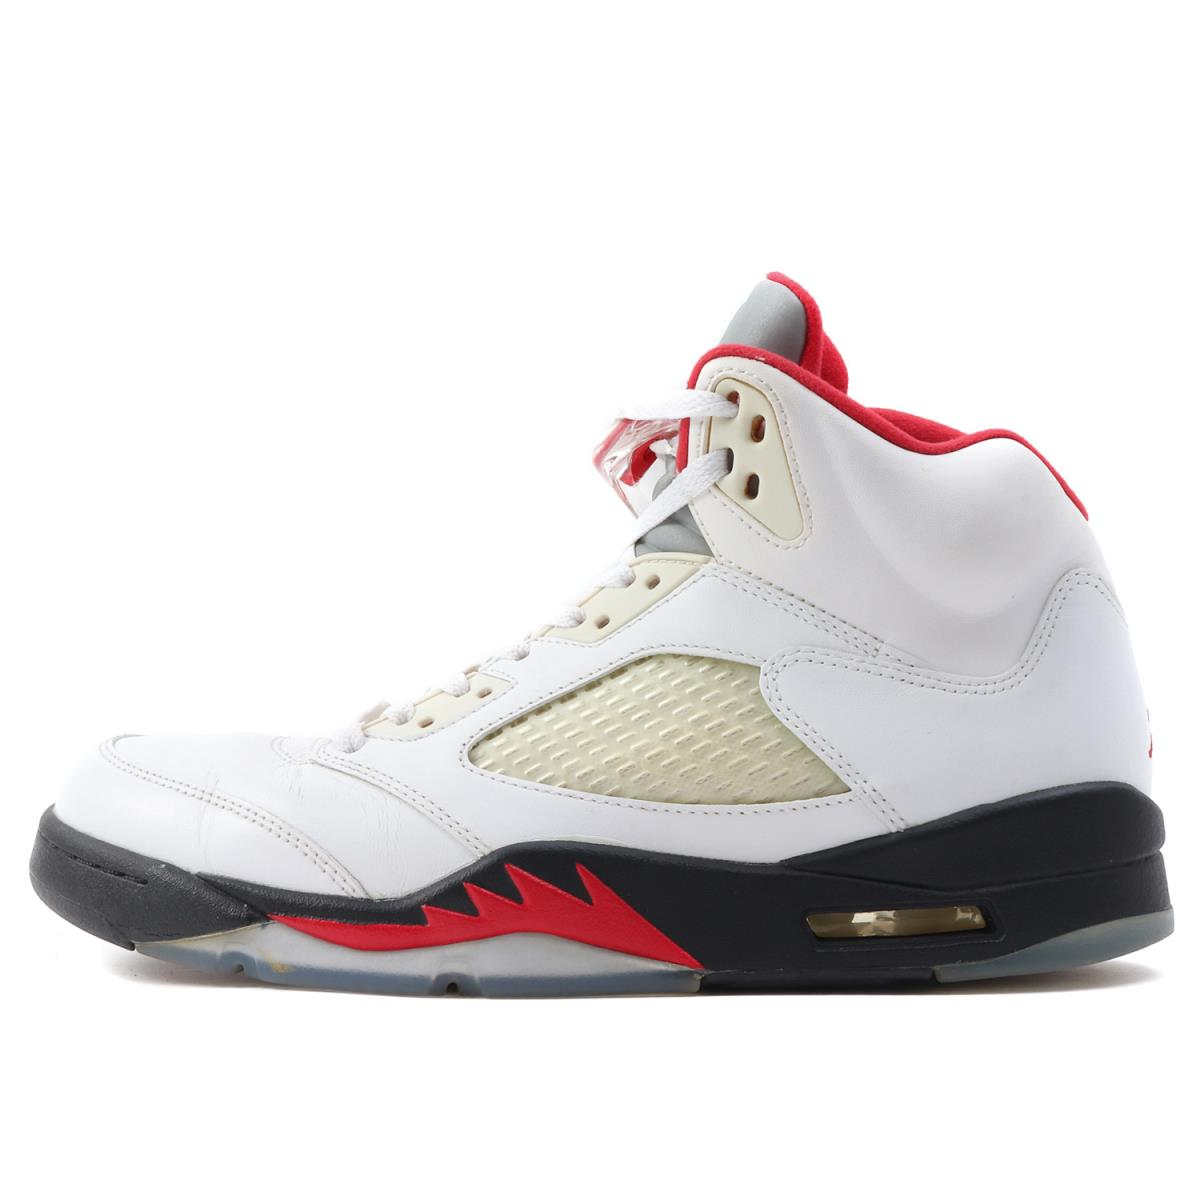 newest collection 40e1c 69469 NIKE (Nike) AIR JORDAN 5 RETRO FIRE RED (  136,027-100 made in 2012) white  X fire red US9.5(27.5cm)